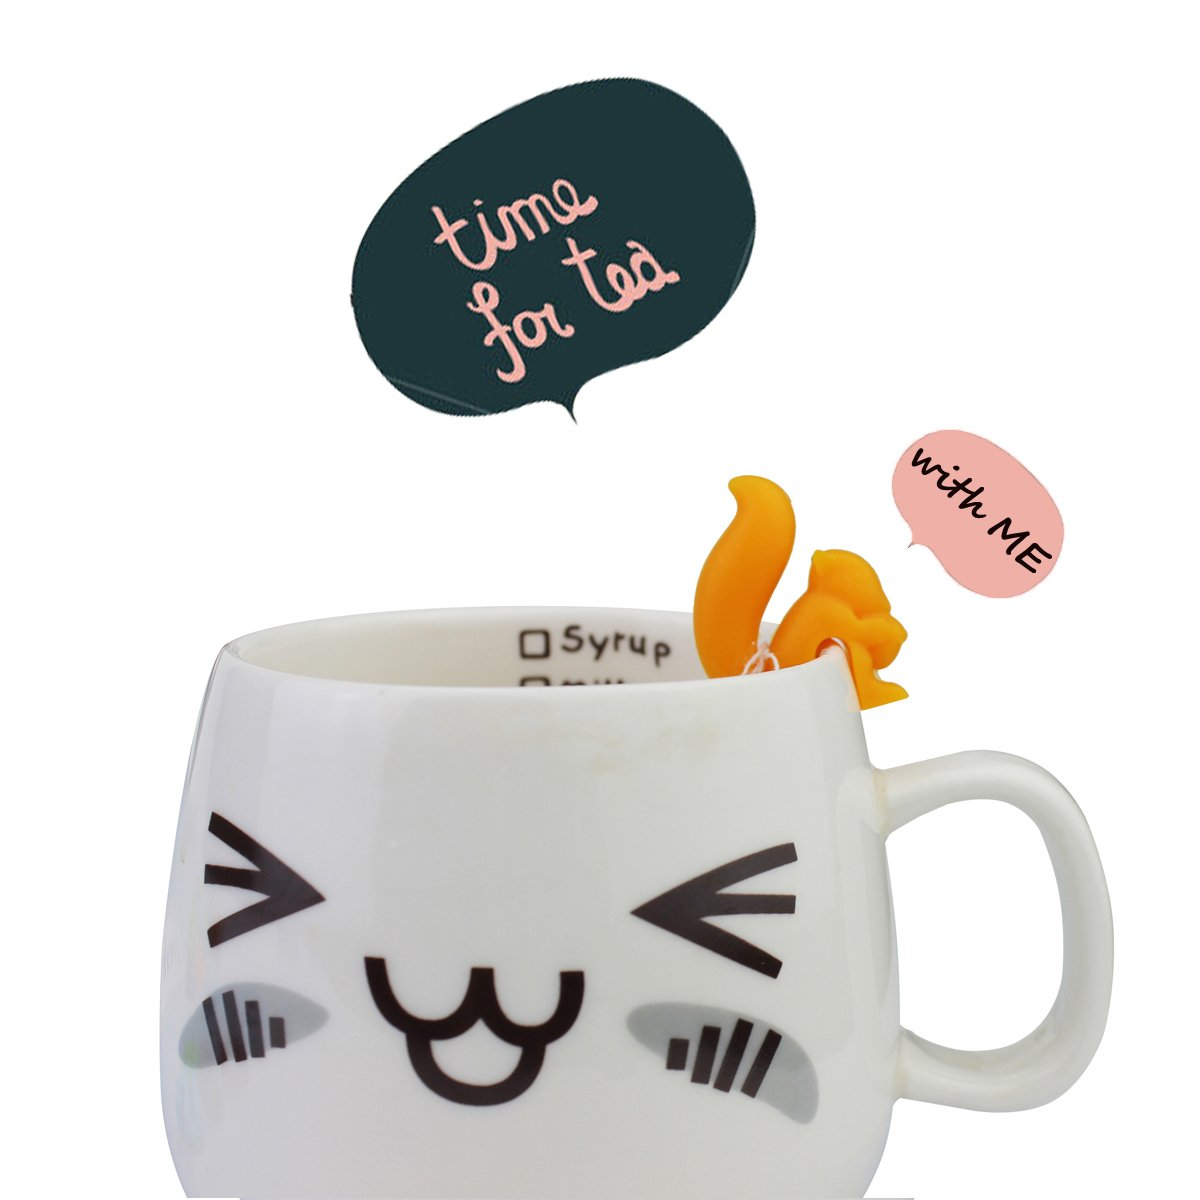 Tea Bag Holder 15 PCS Tea Bag Hangers Cute Drink Markers Squirrel Shaped Glass Charm Silicone Identifier for Cups and Mugs Novelty Bank